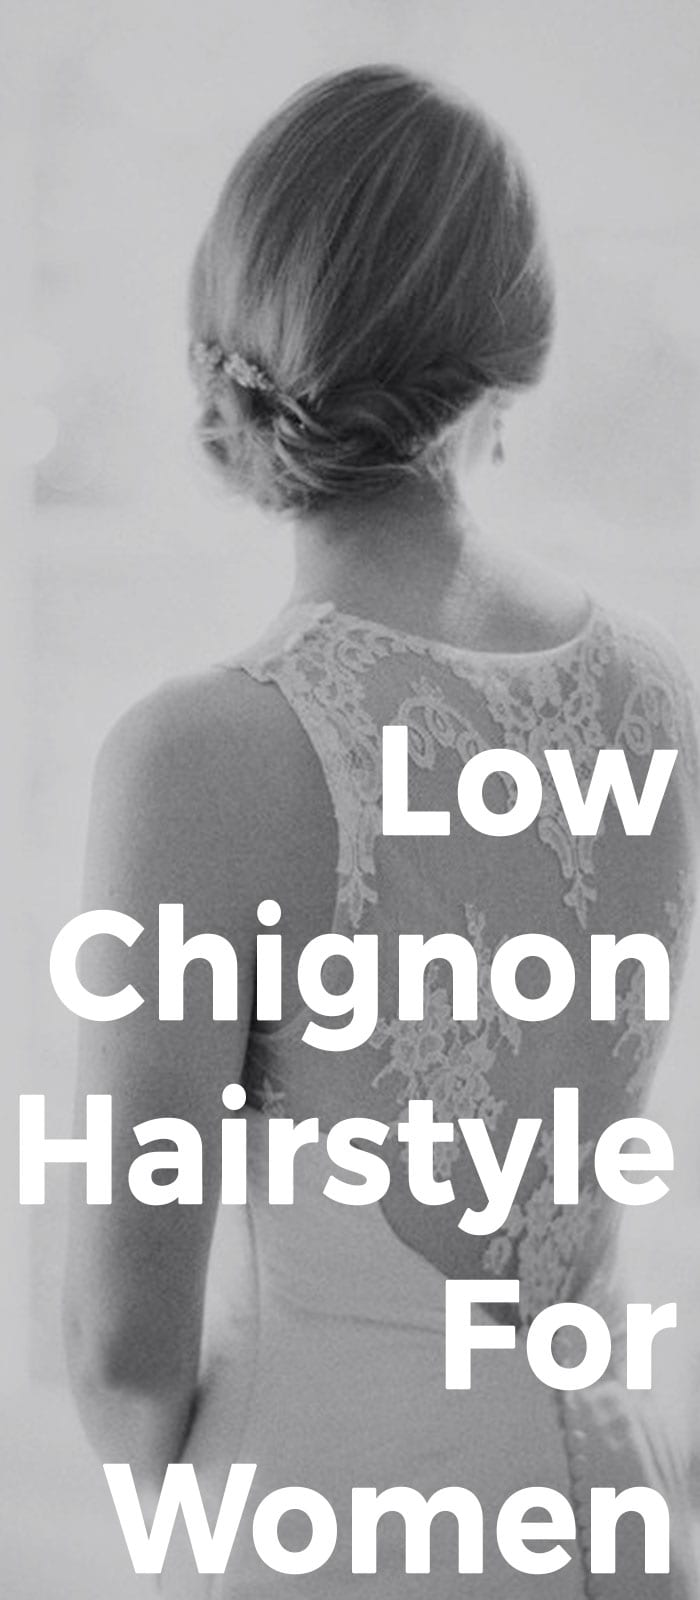 Low Chignon Hairstyle For Women